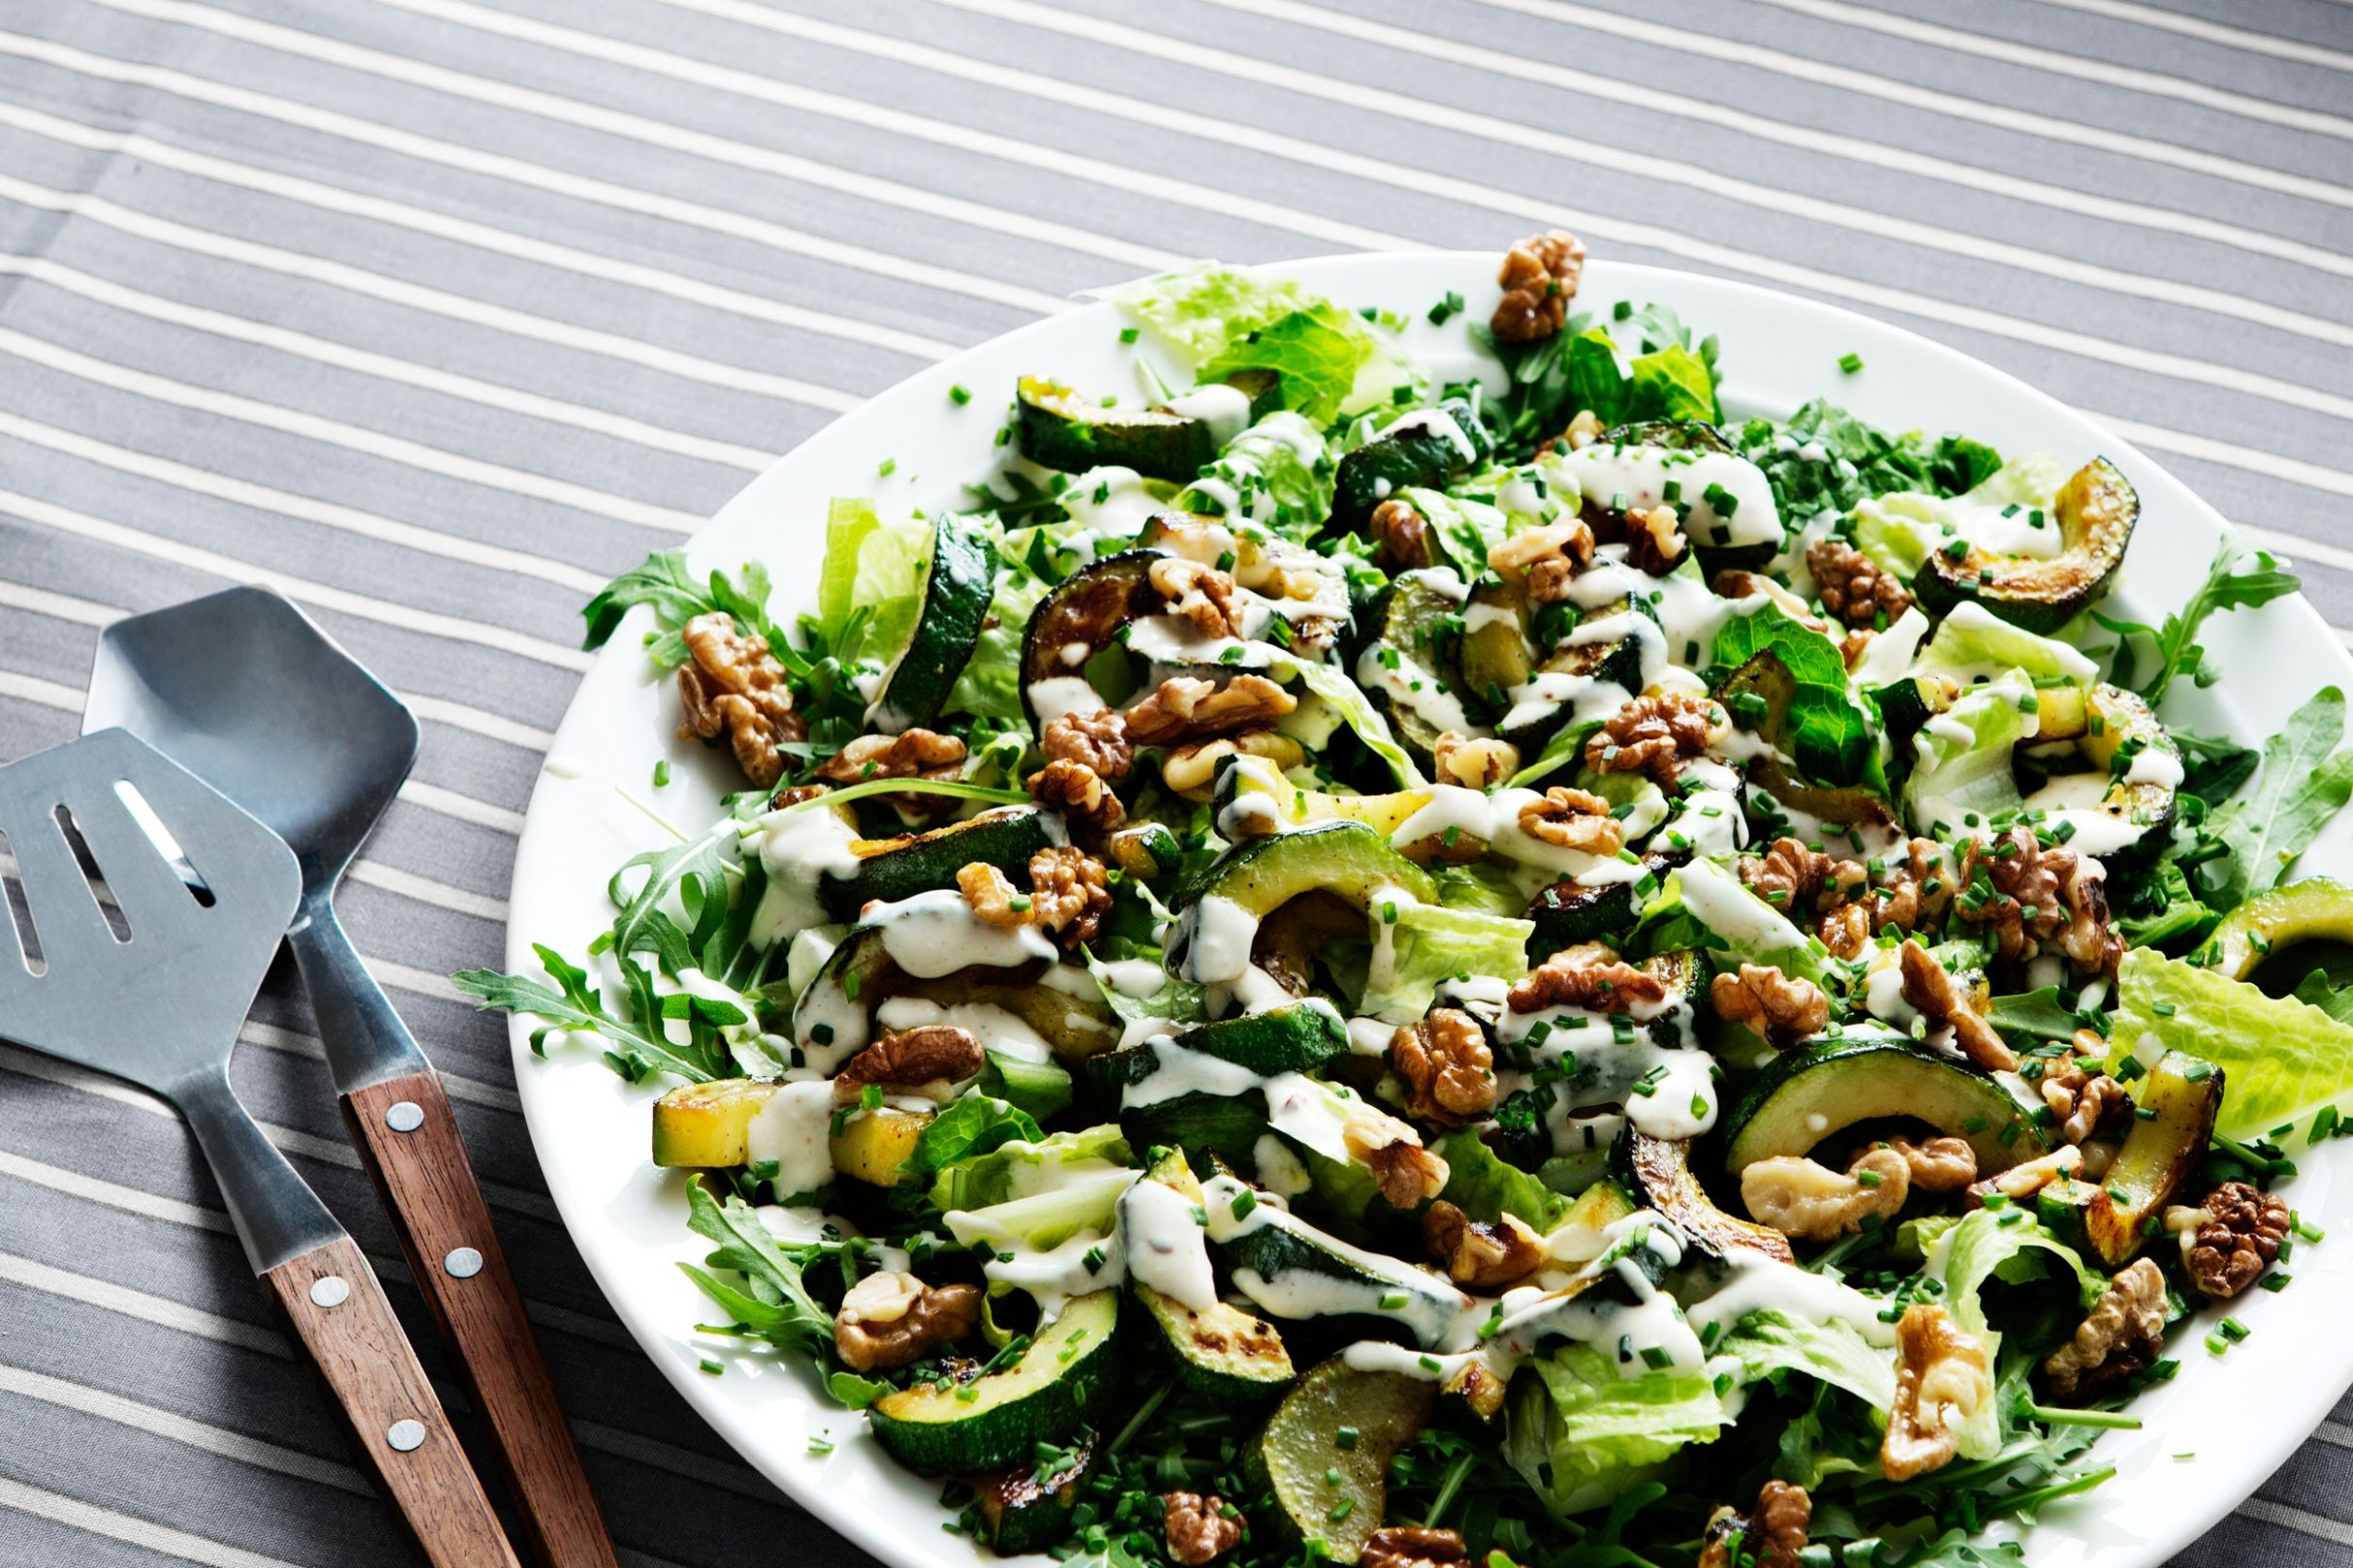 Low-carb zucchini and walnut salad - Salad Recipes Low Carb